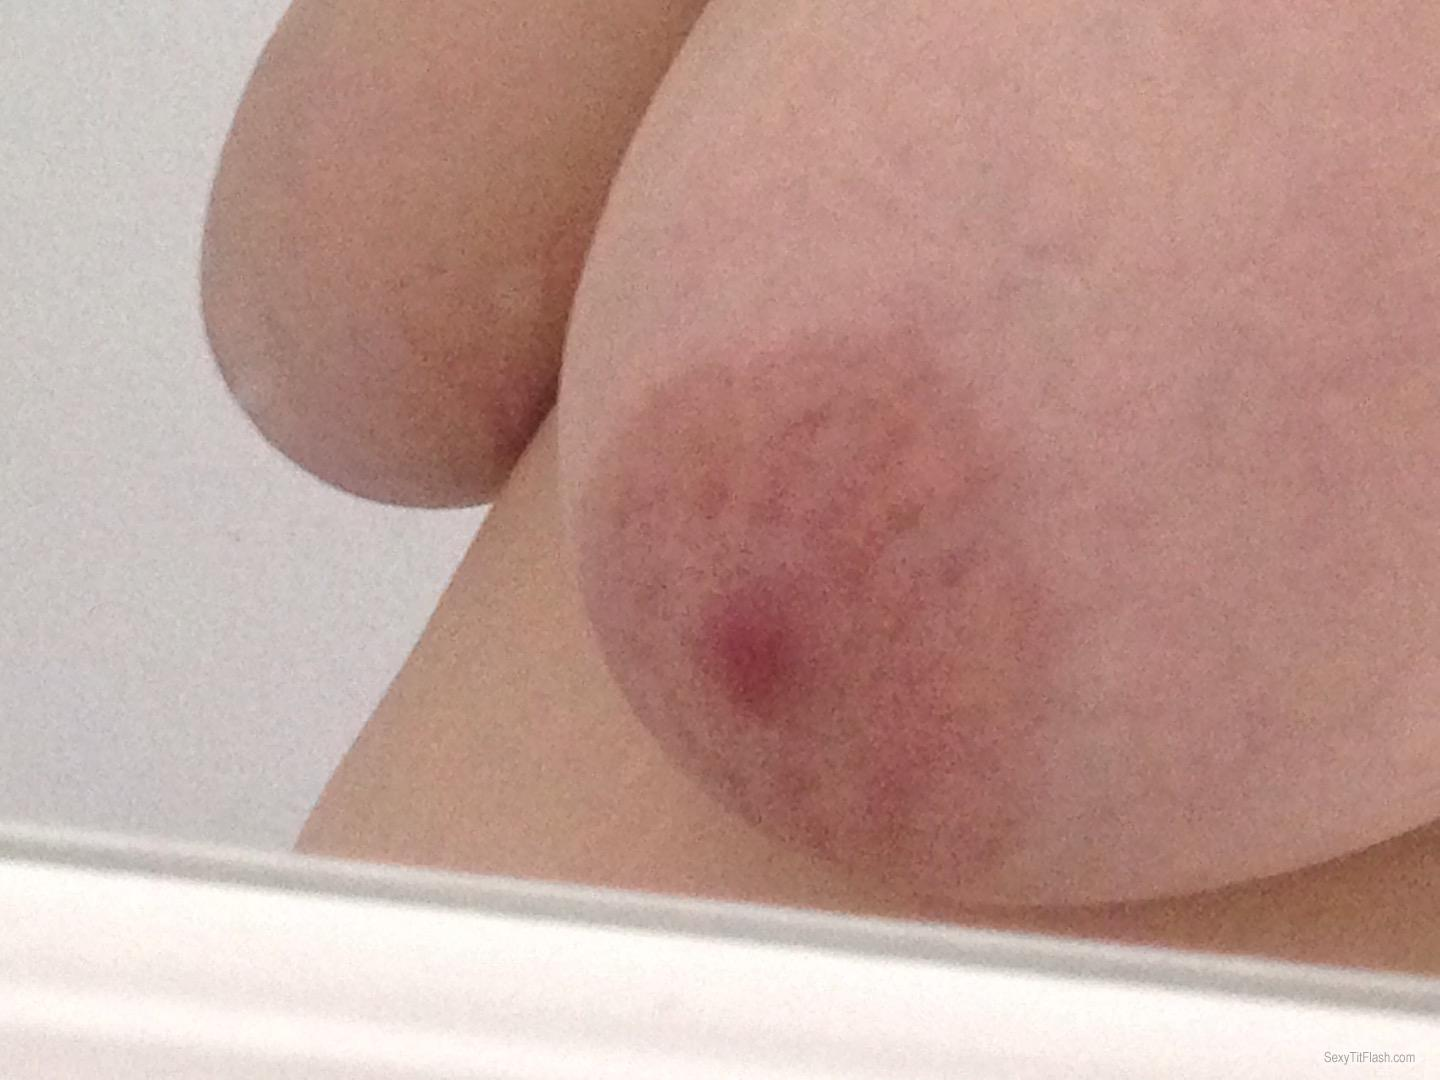 Tit Flash: My Extremely Big Tits (Selfie) - Titty Titty Bang Bang from United Kingdom